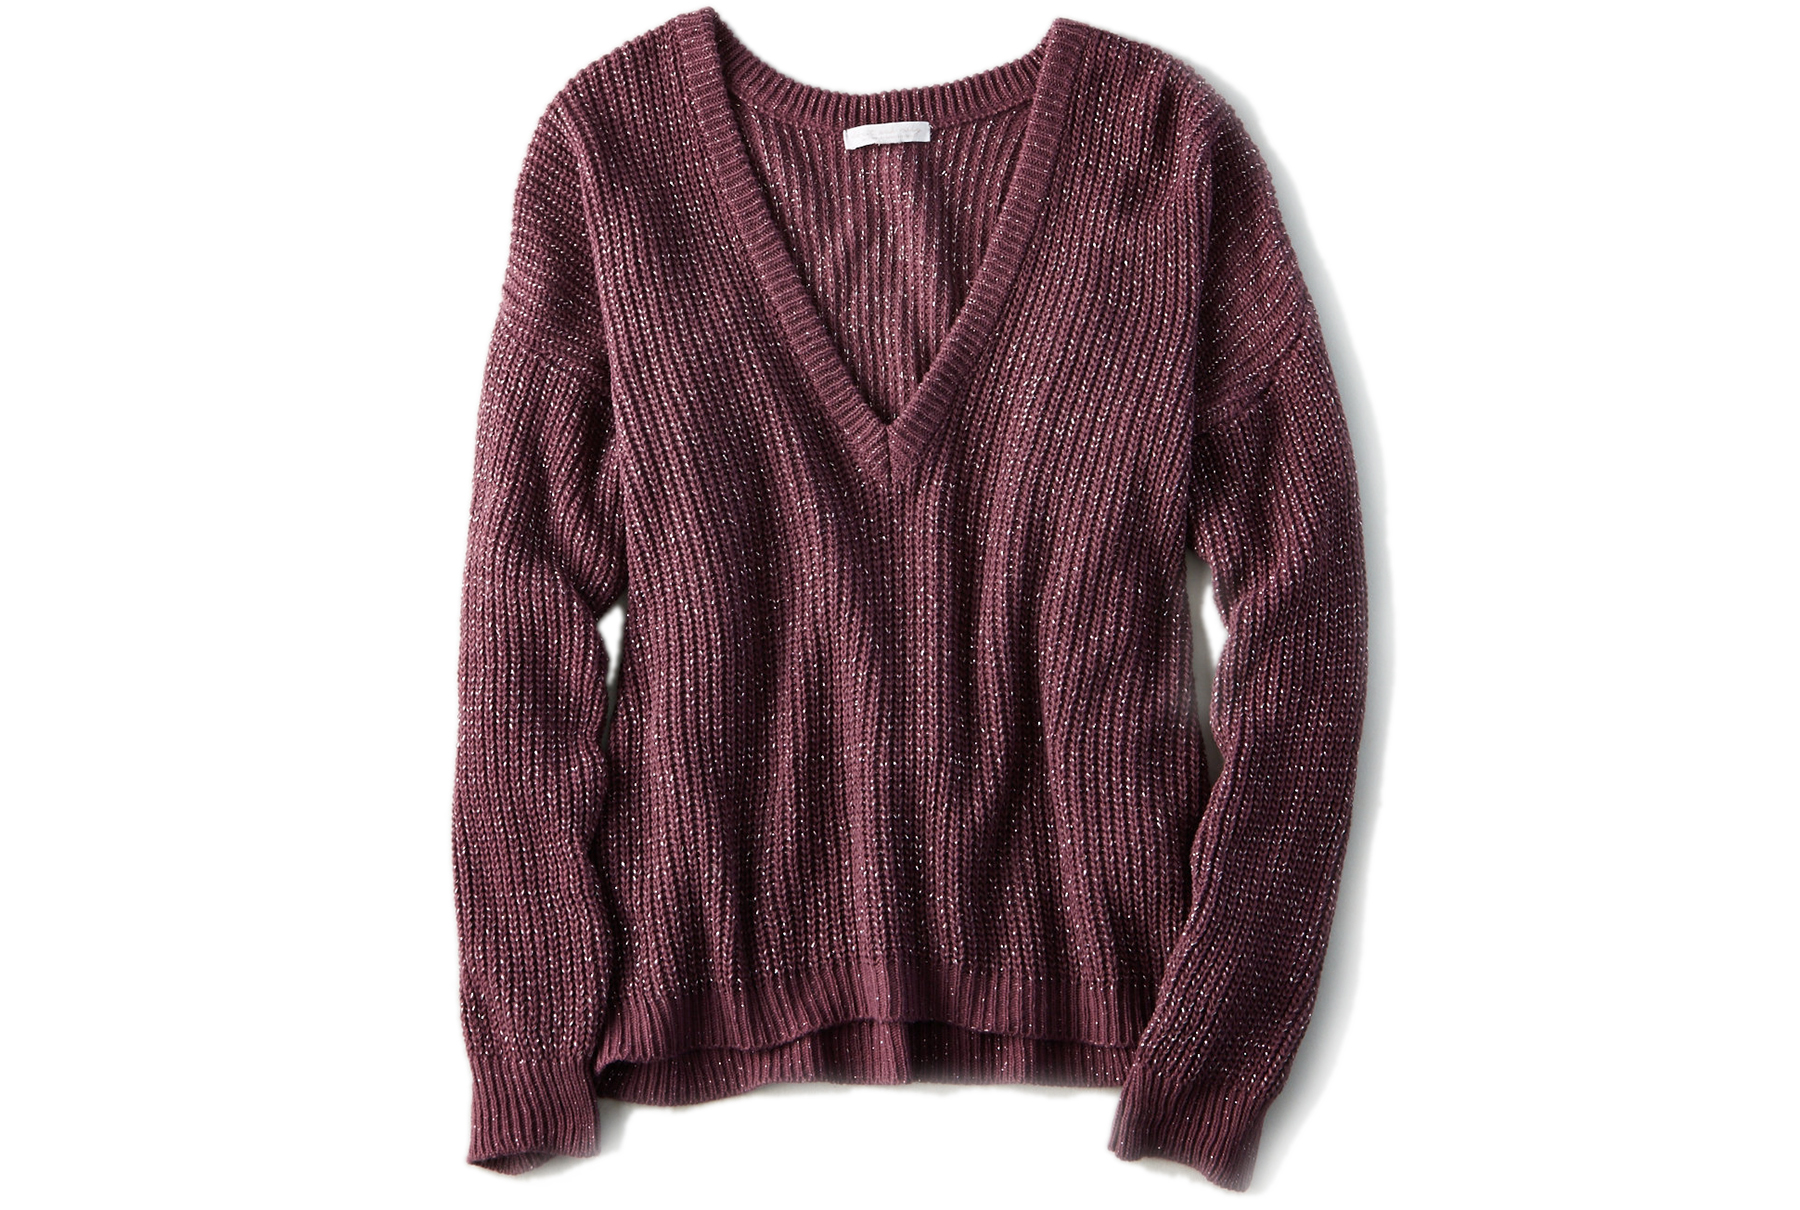 American Eagle Outfitters Don't Ask Why Sparkle Sweater